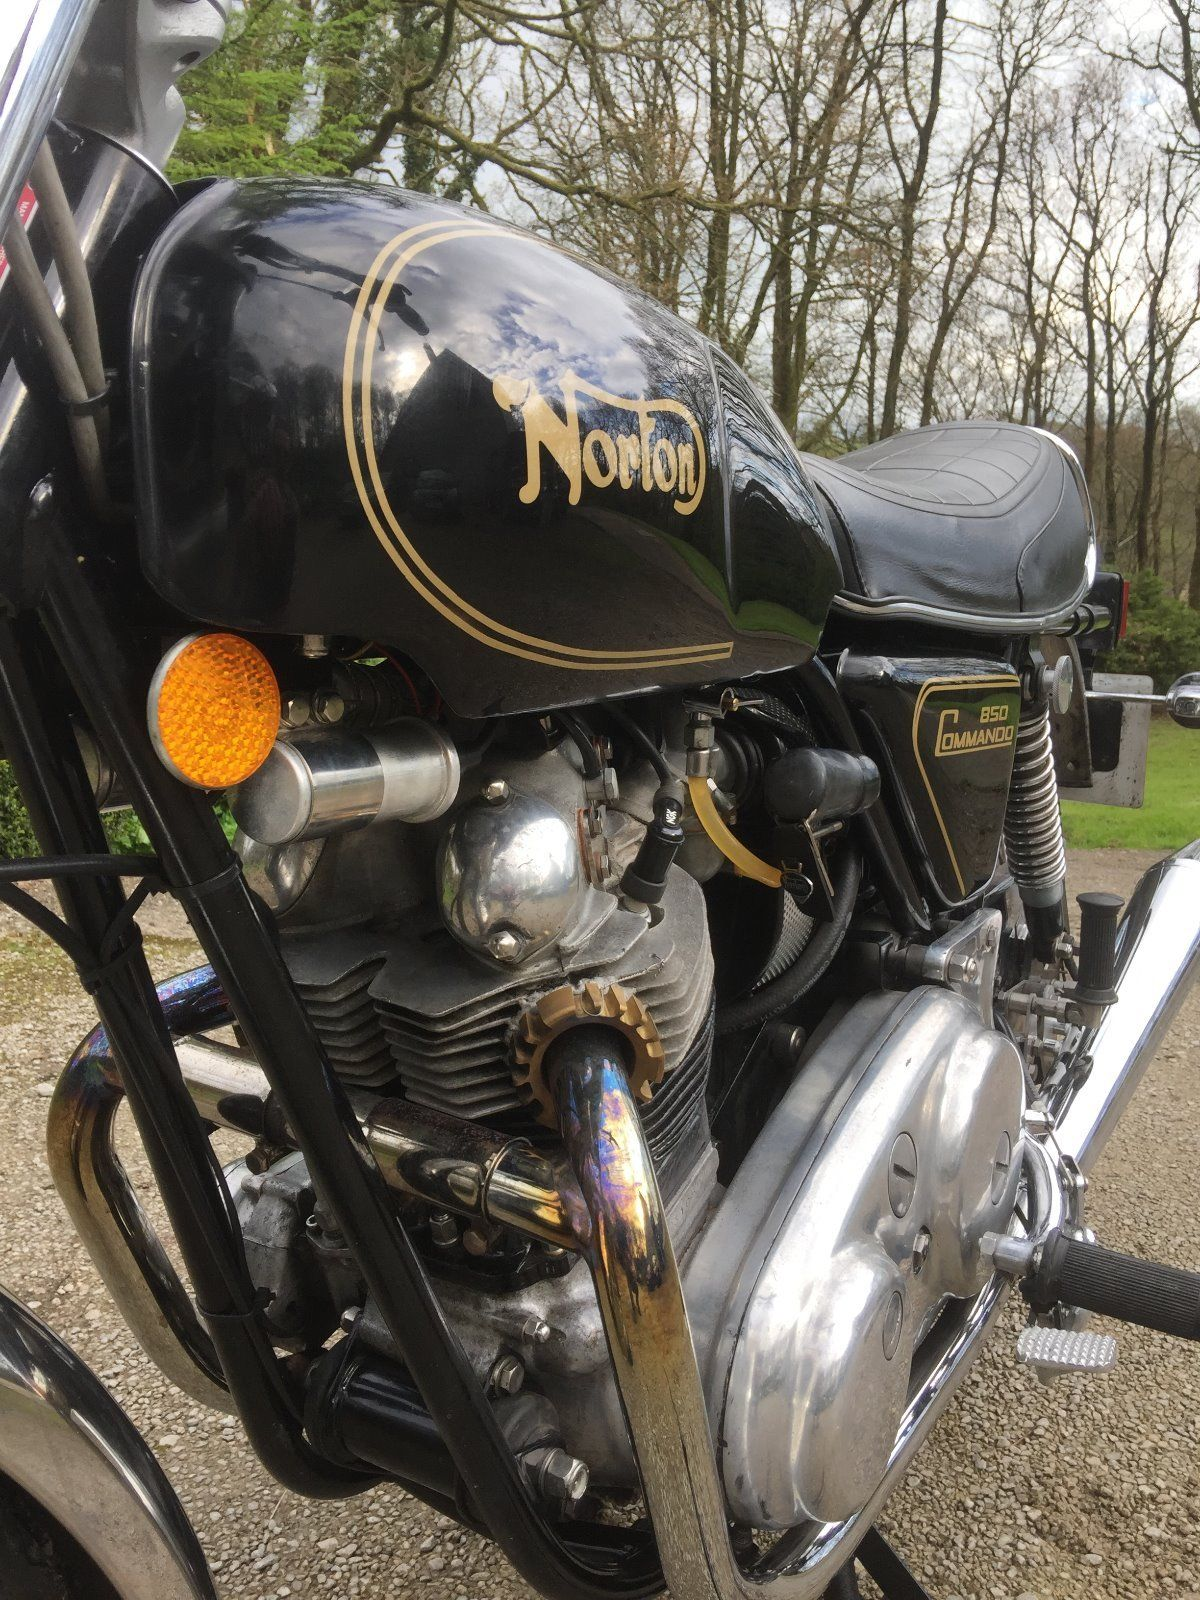 Norton Commando 850 - 1973